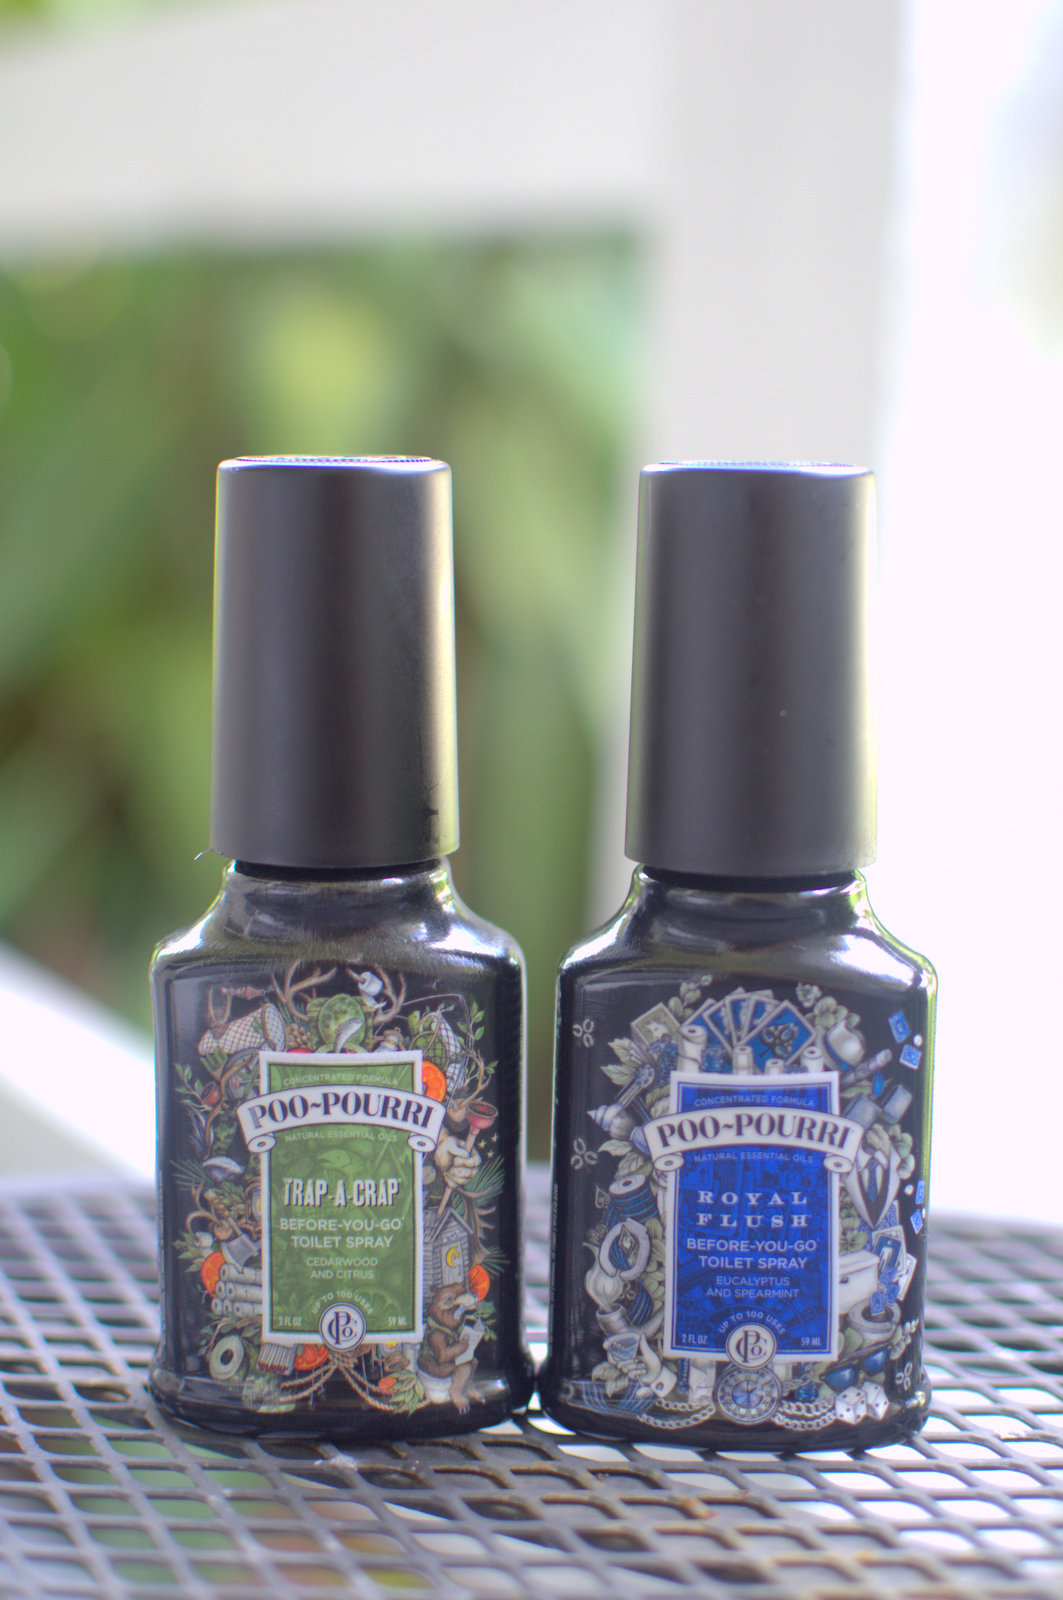 If You Poop, You Need Poopourri